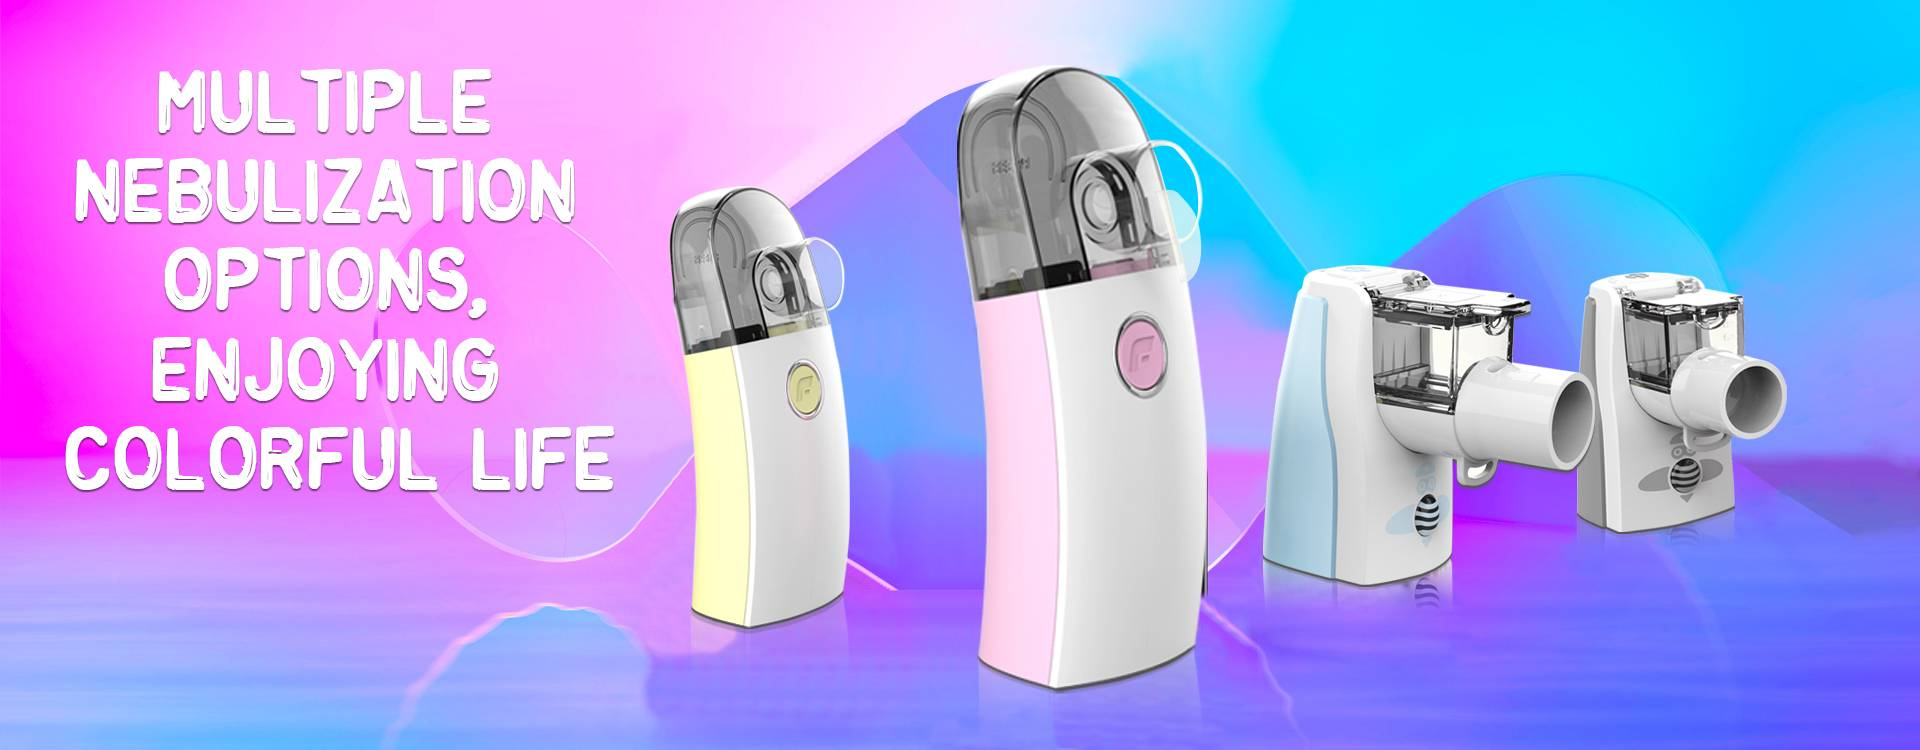 Feellife mesh nebulizer,portable nebulizer, mesh nebulizer, smart nebulizer, intelligent nebulizer